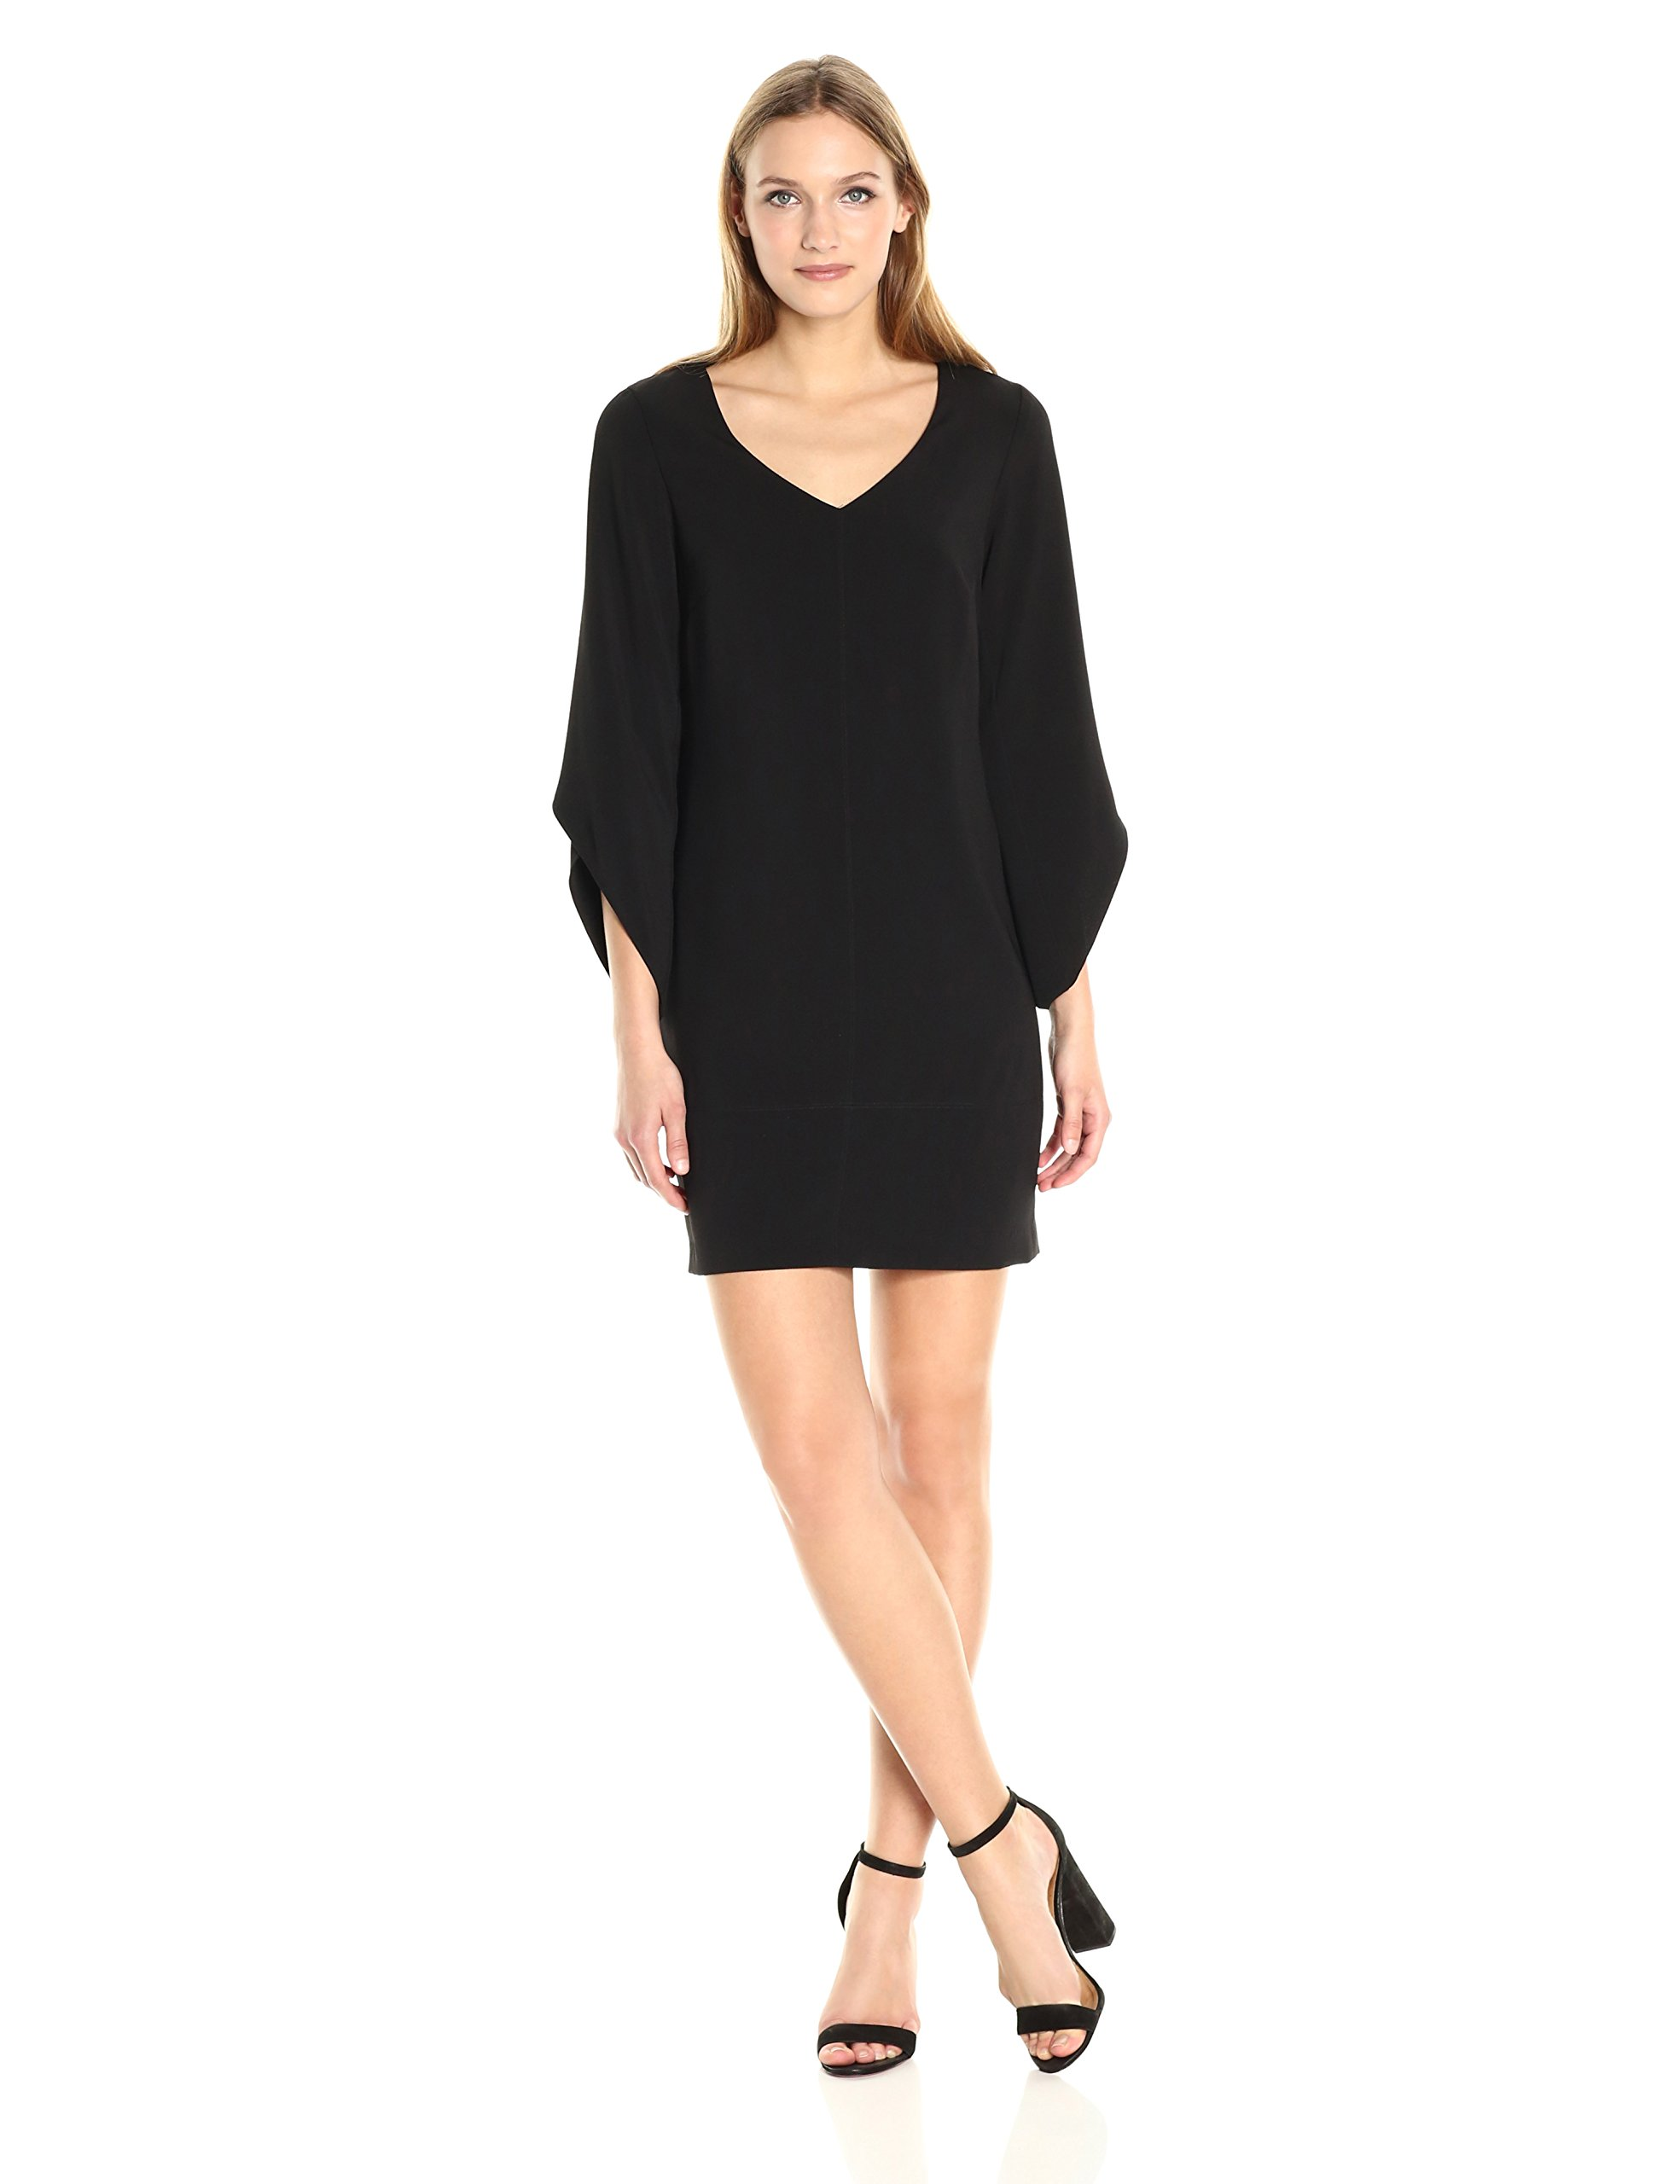 laundry BY SHELLI SEGAL Women's Tulip Sleeve Crepe T Body, Black, 2